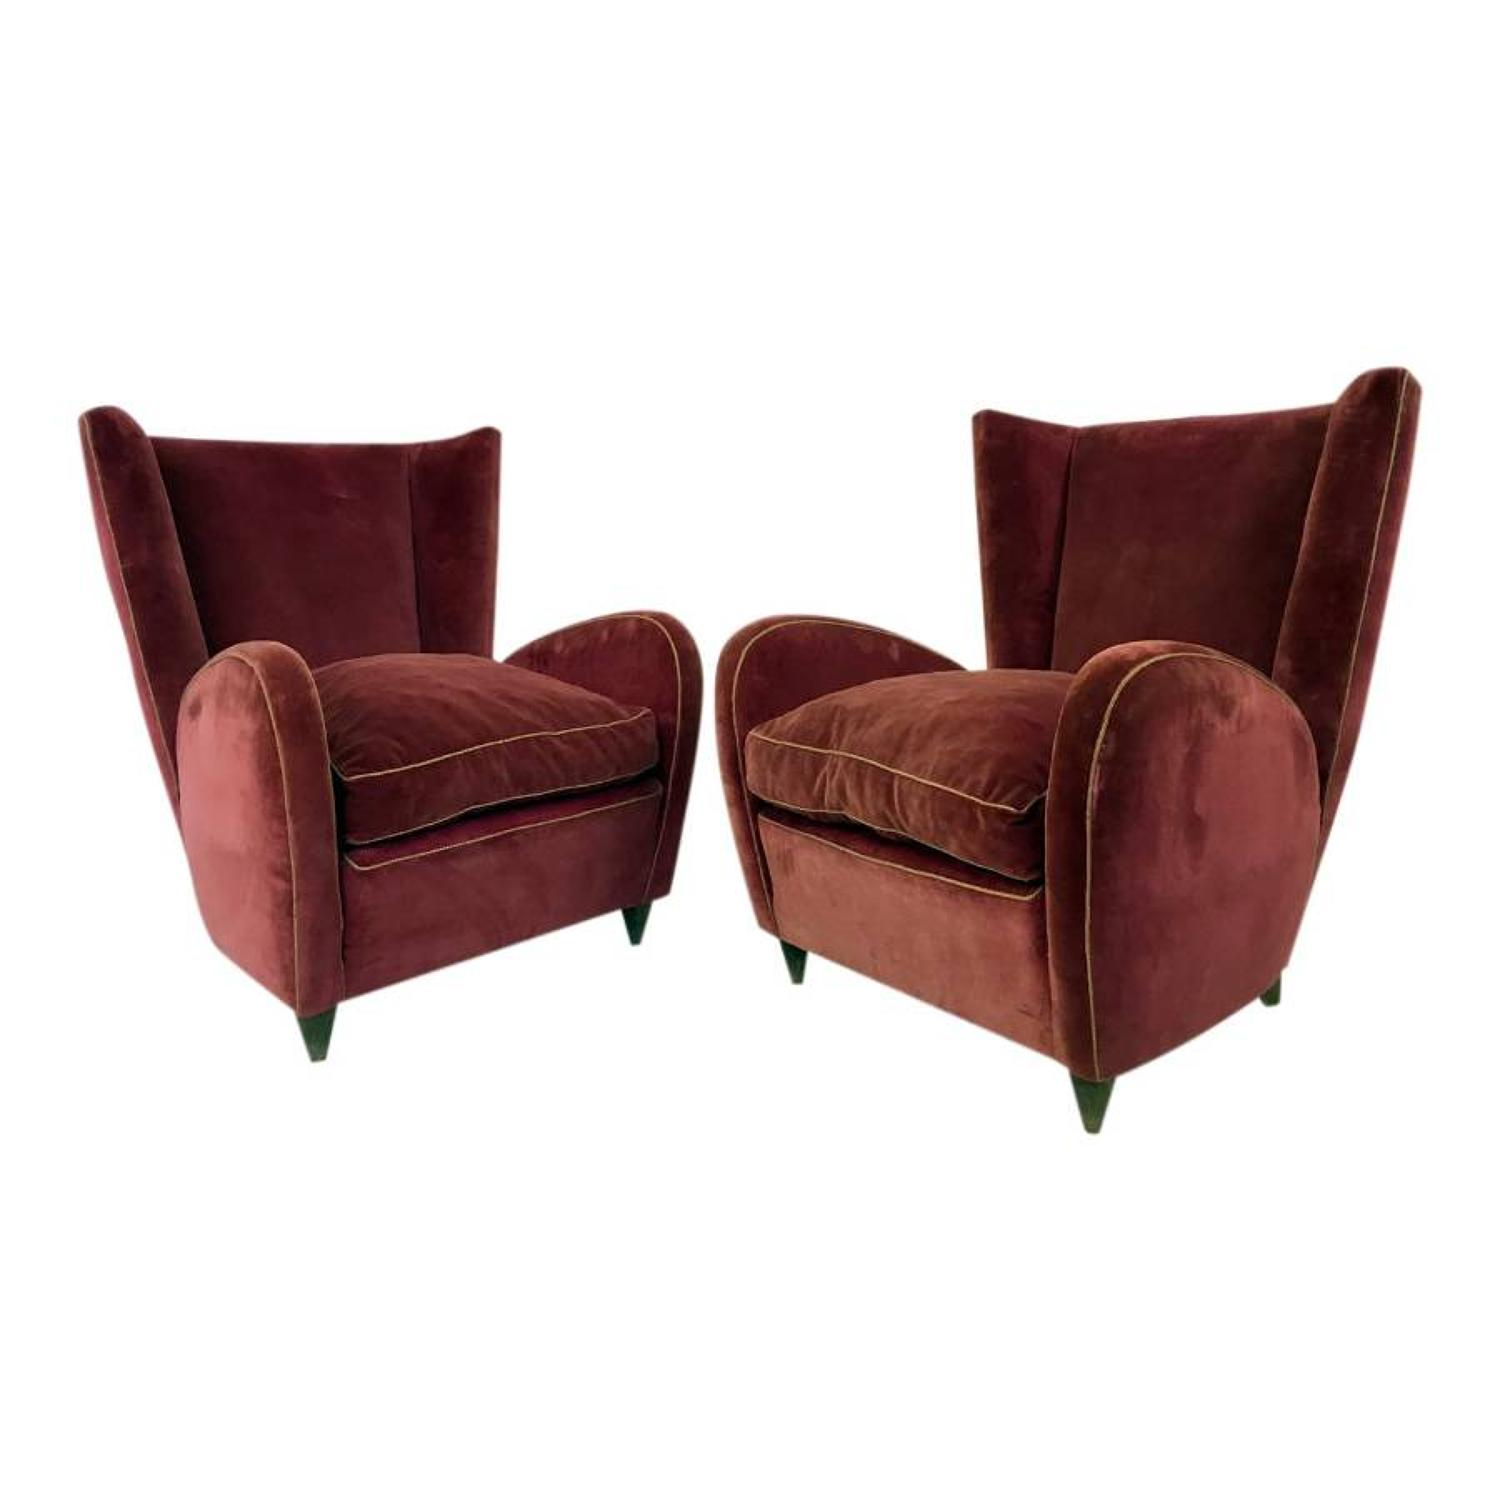 A pair of 1950s Italian armchairs by Paolo Buffa